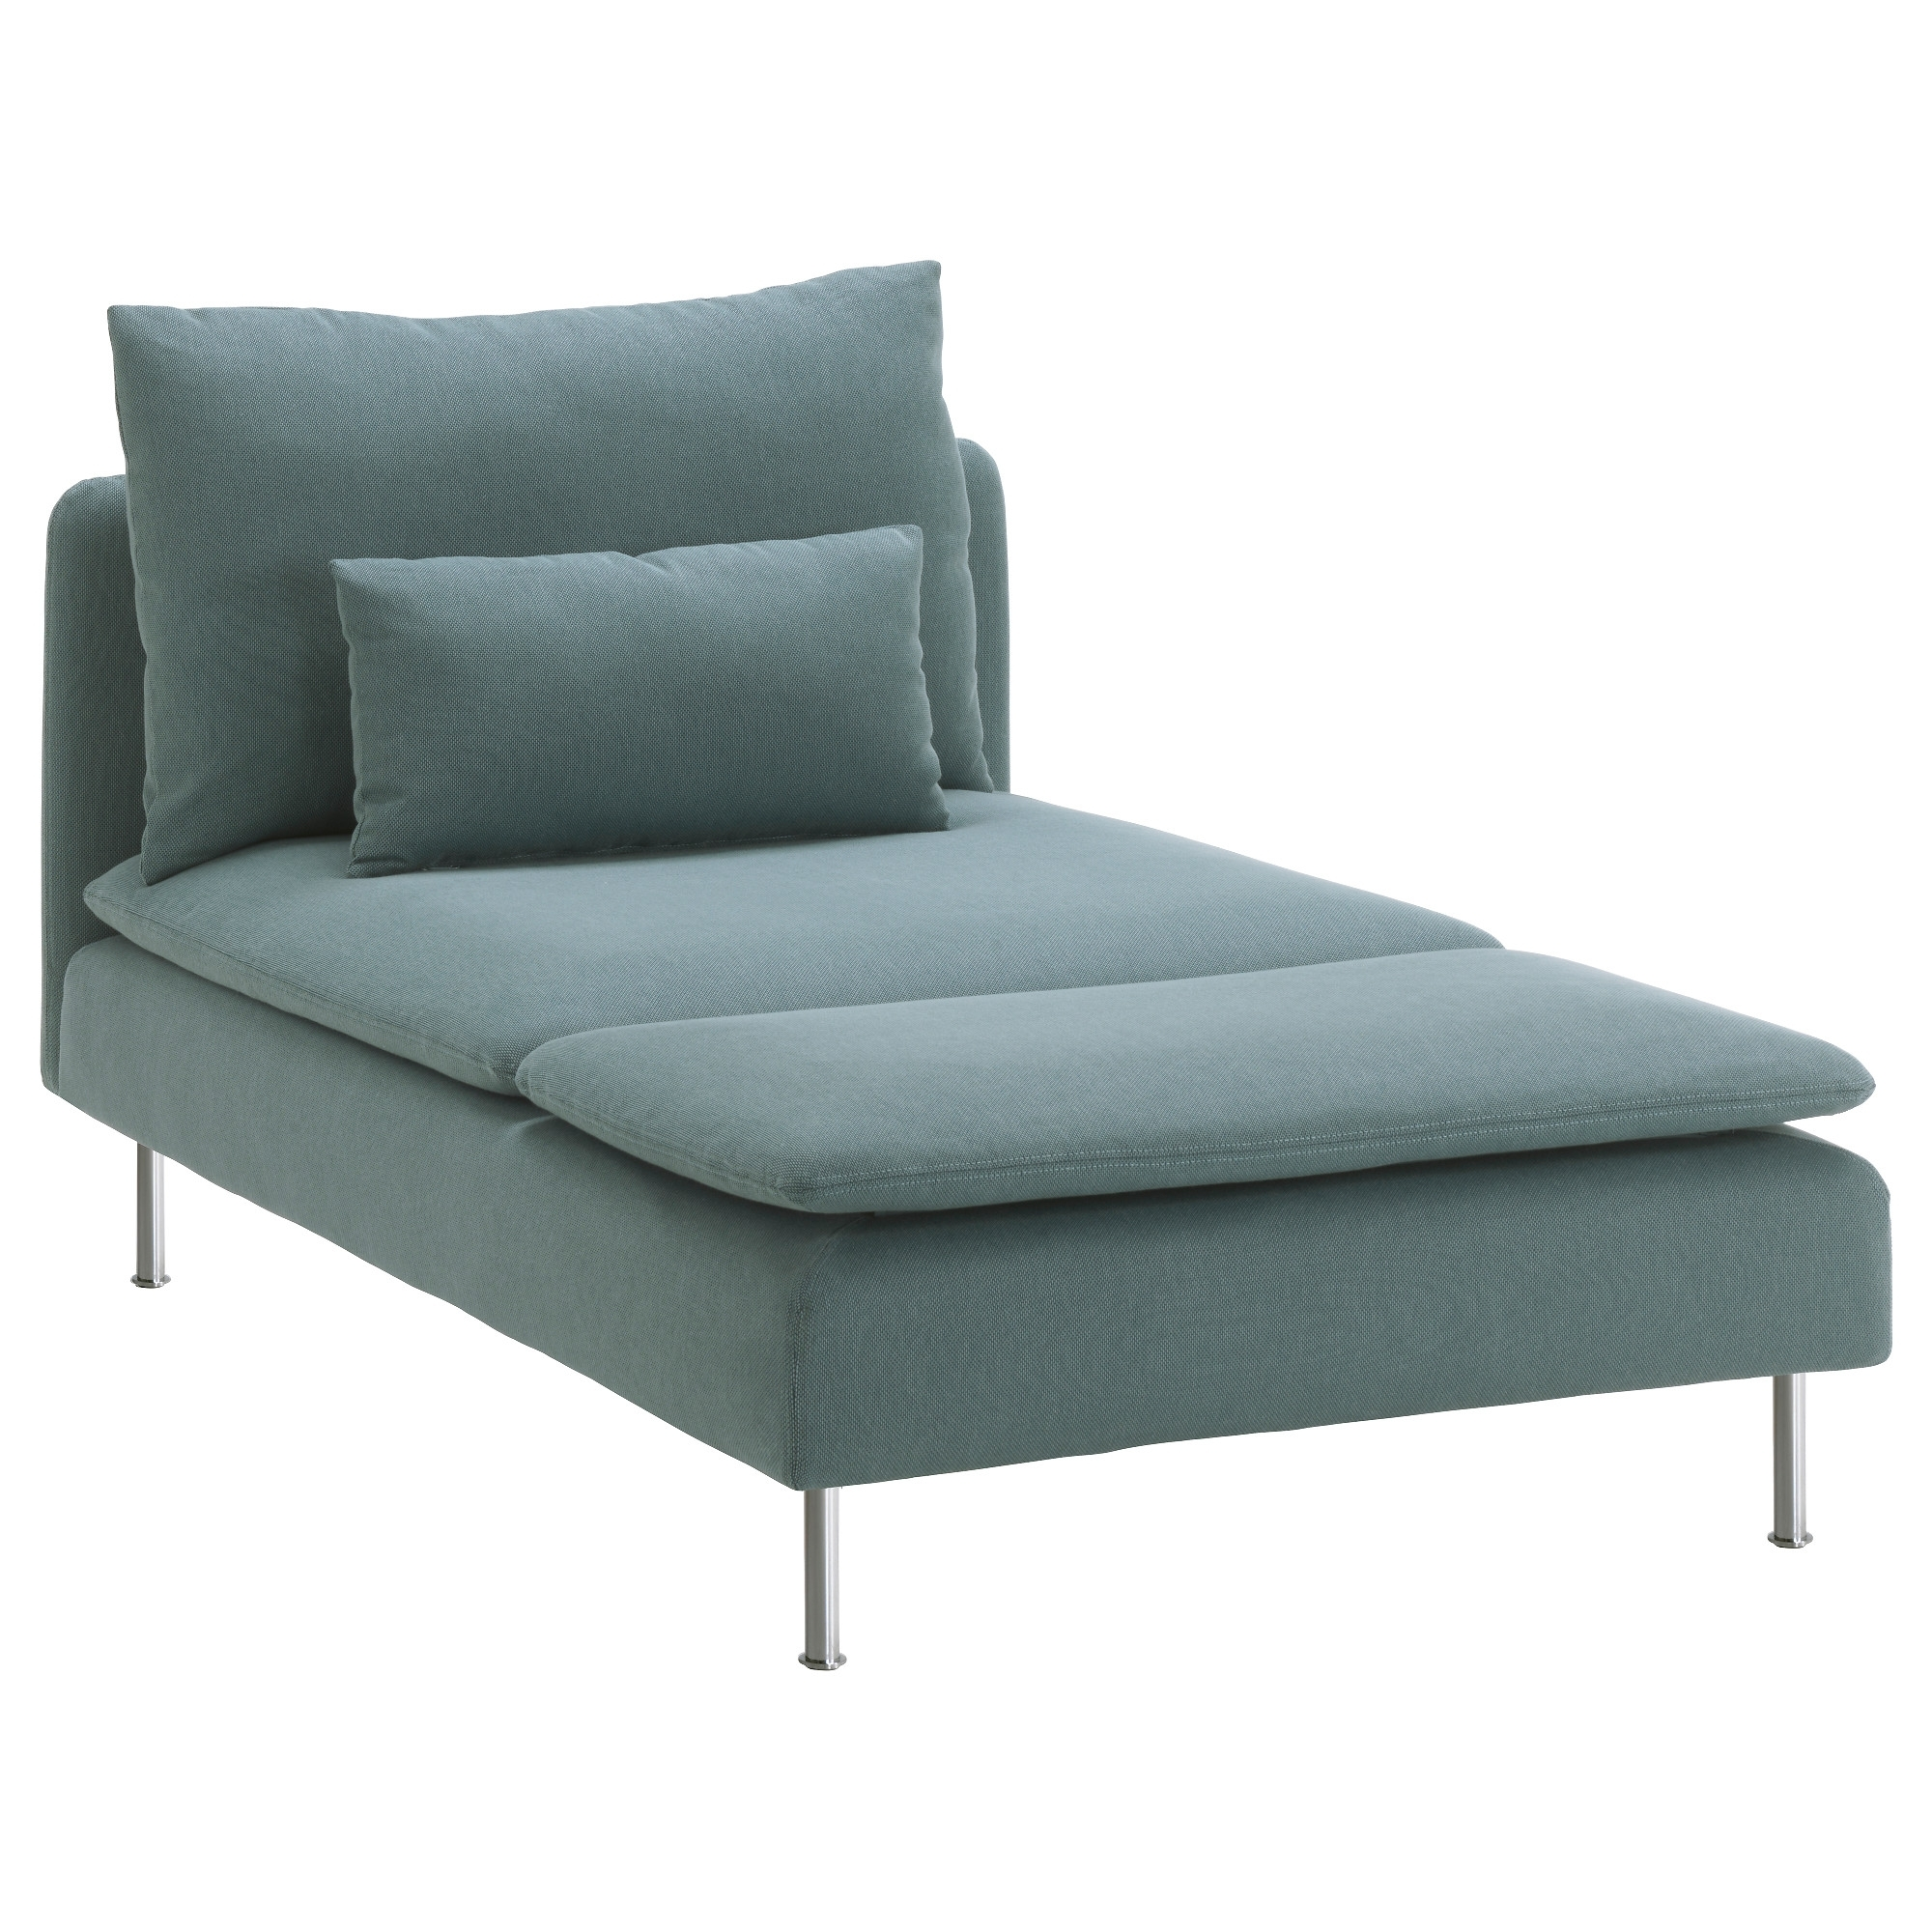 Current Söderhamn Chaise – Samsta Dark Gray – Ikea Throughout Ikea Chaise Lounge Chairs (View 13 of 15)